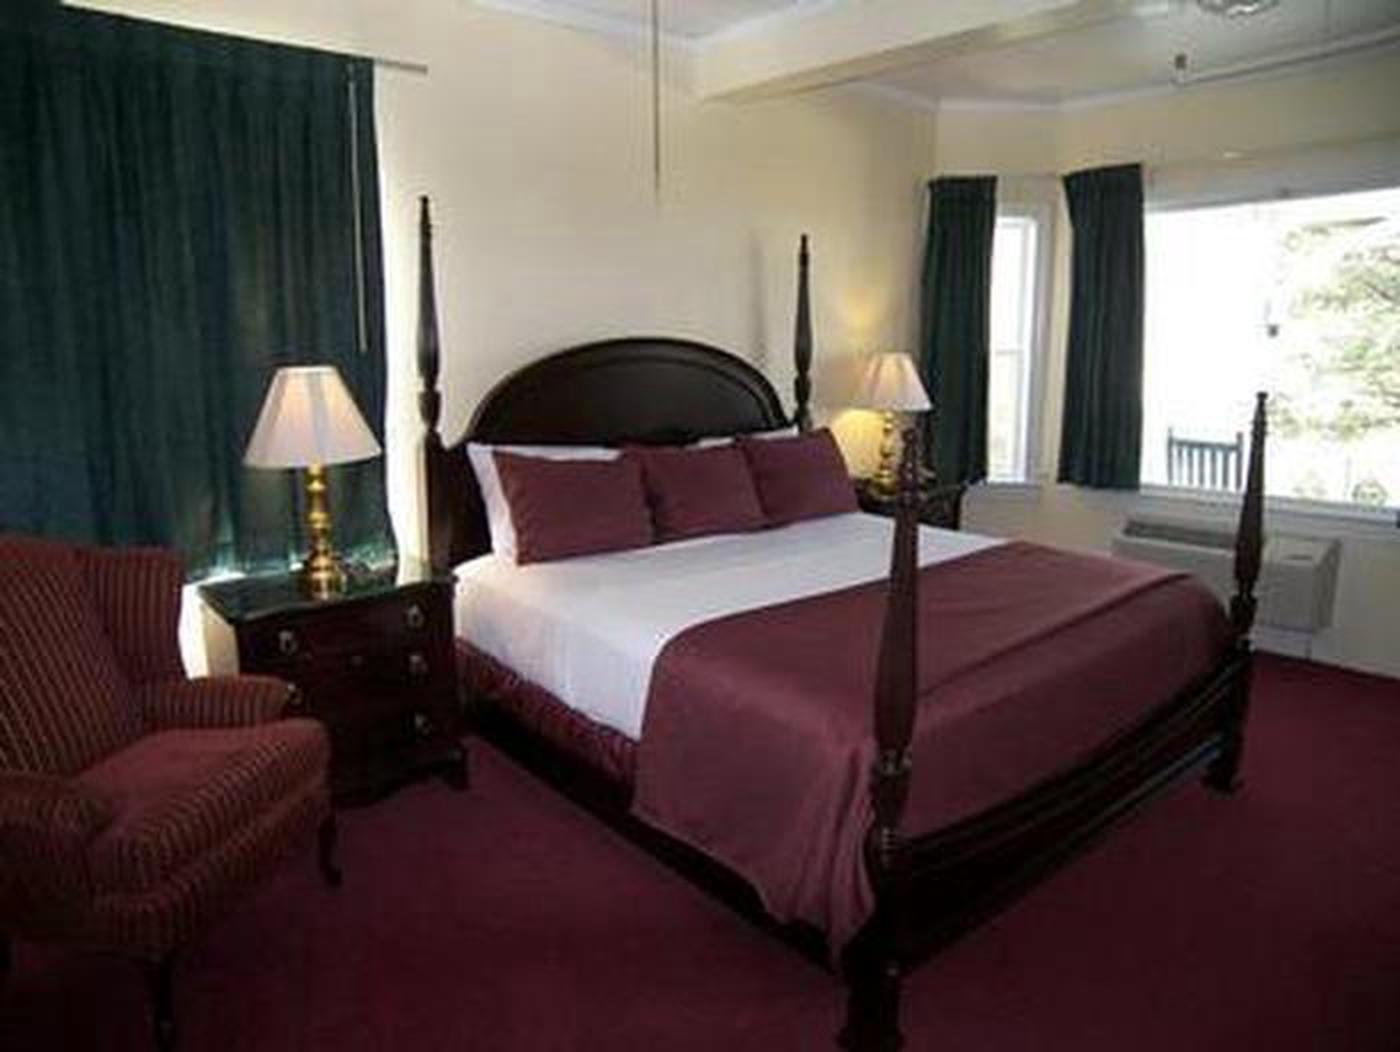 Rich DetailThe 53 guestrooms and suites at this Historic Hotels of America feature rich decorations including crown moldings and original heart pine wood floors.